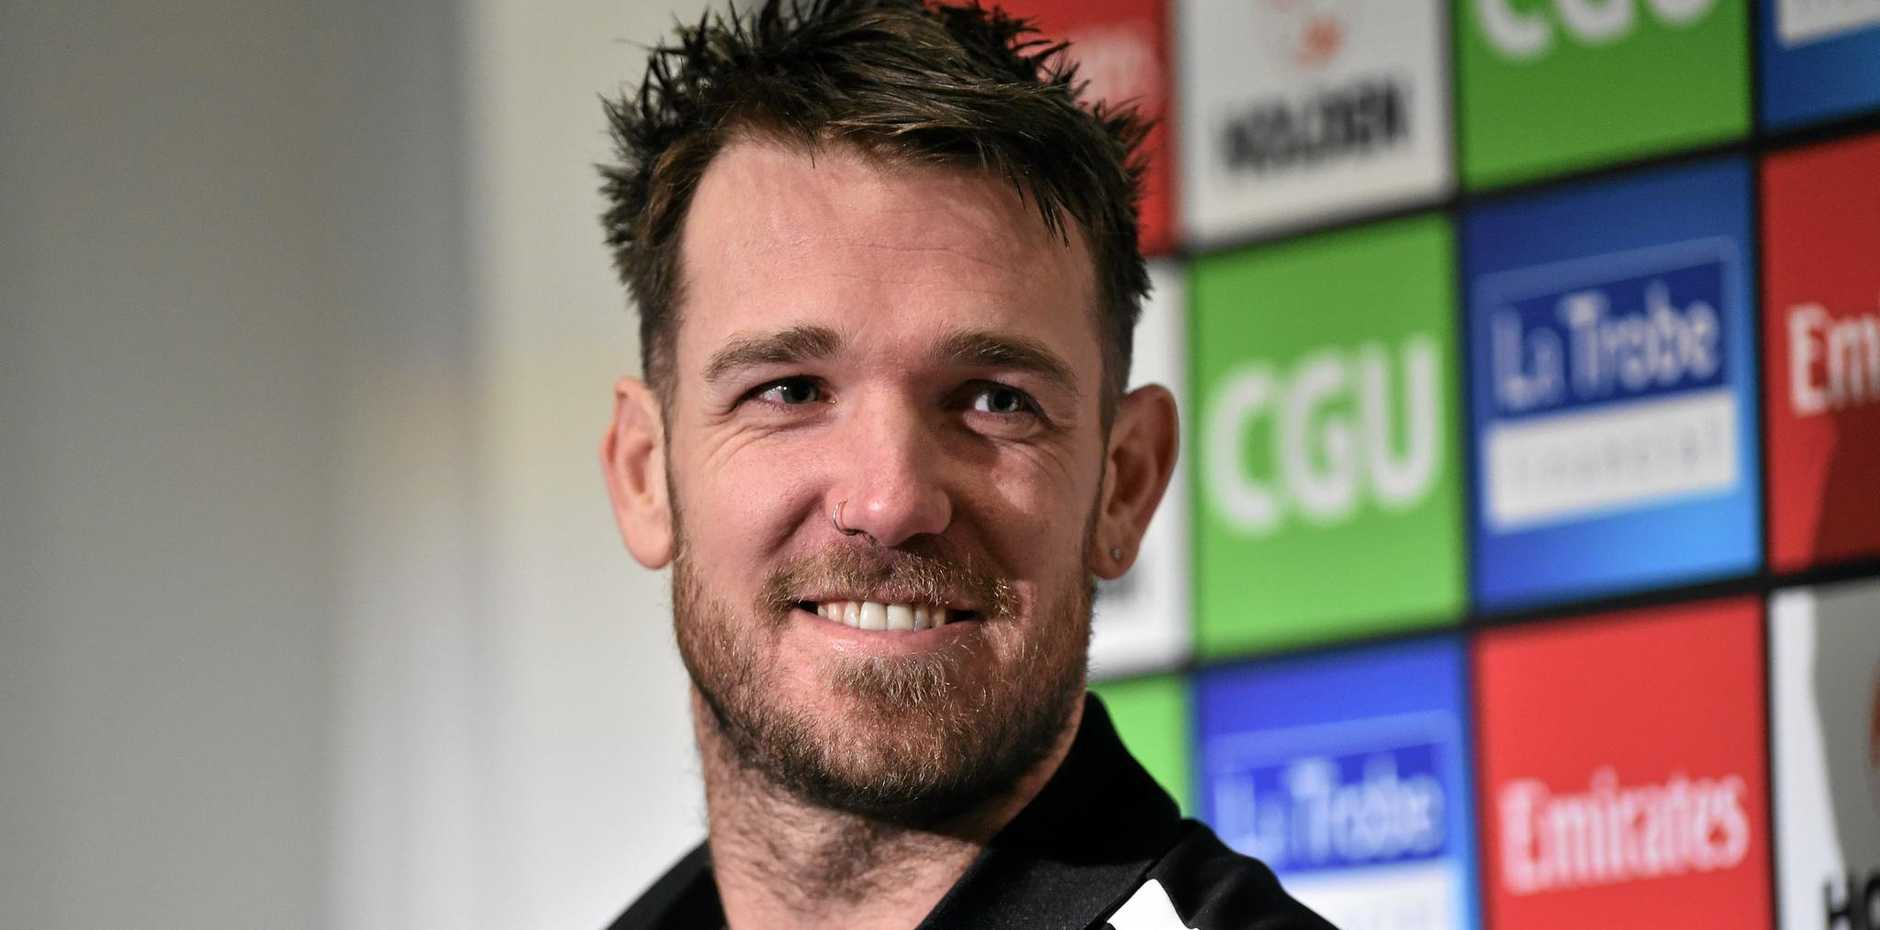 Collingwood Magpies player Dane Swan announces his retirement at the Glasshouse in Melbourne, Tuesday, Aug. 23, 2016. The 2011 Brownlow medallist announced on Tuesday he would not play on in 2017, ending his 258-game career with the Magpies. (AAP Image/Julian Smith) NO ARCHIVING